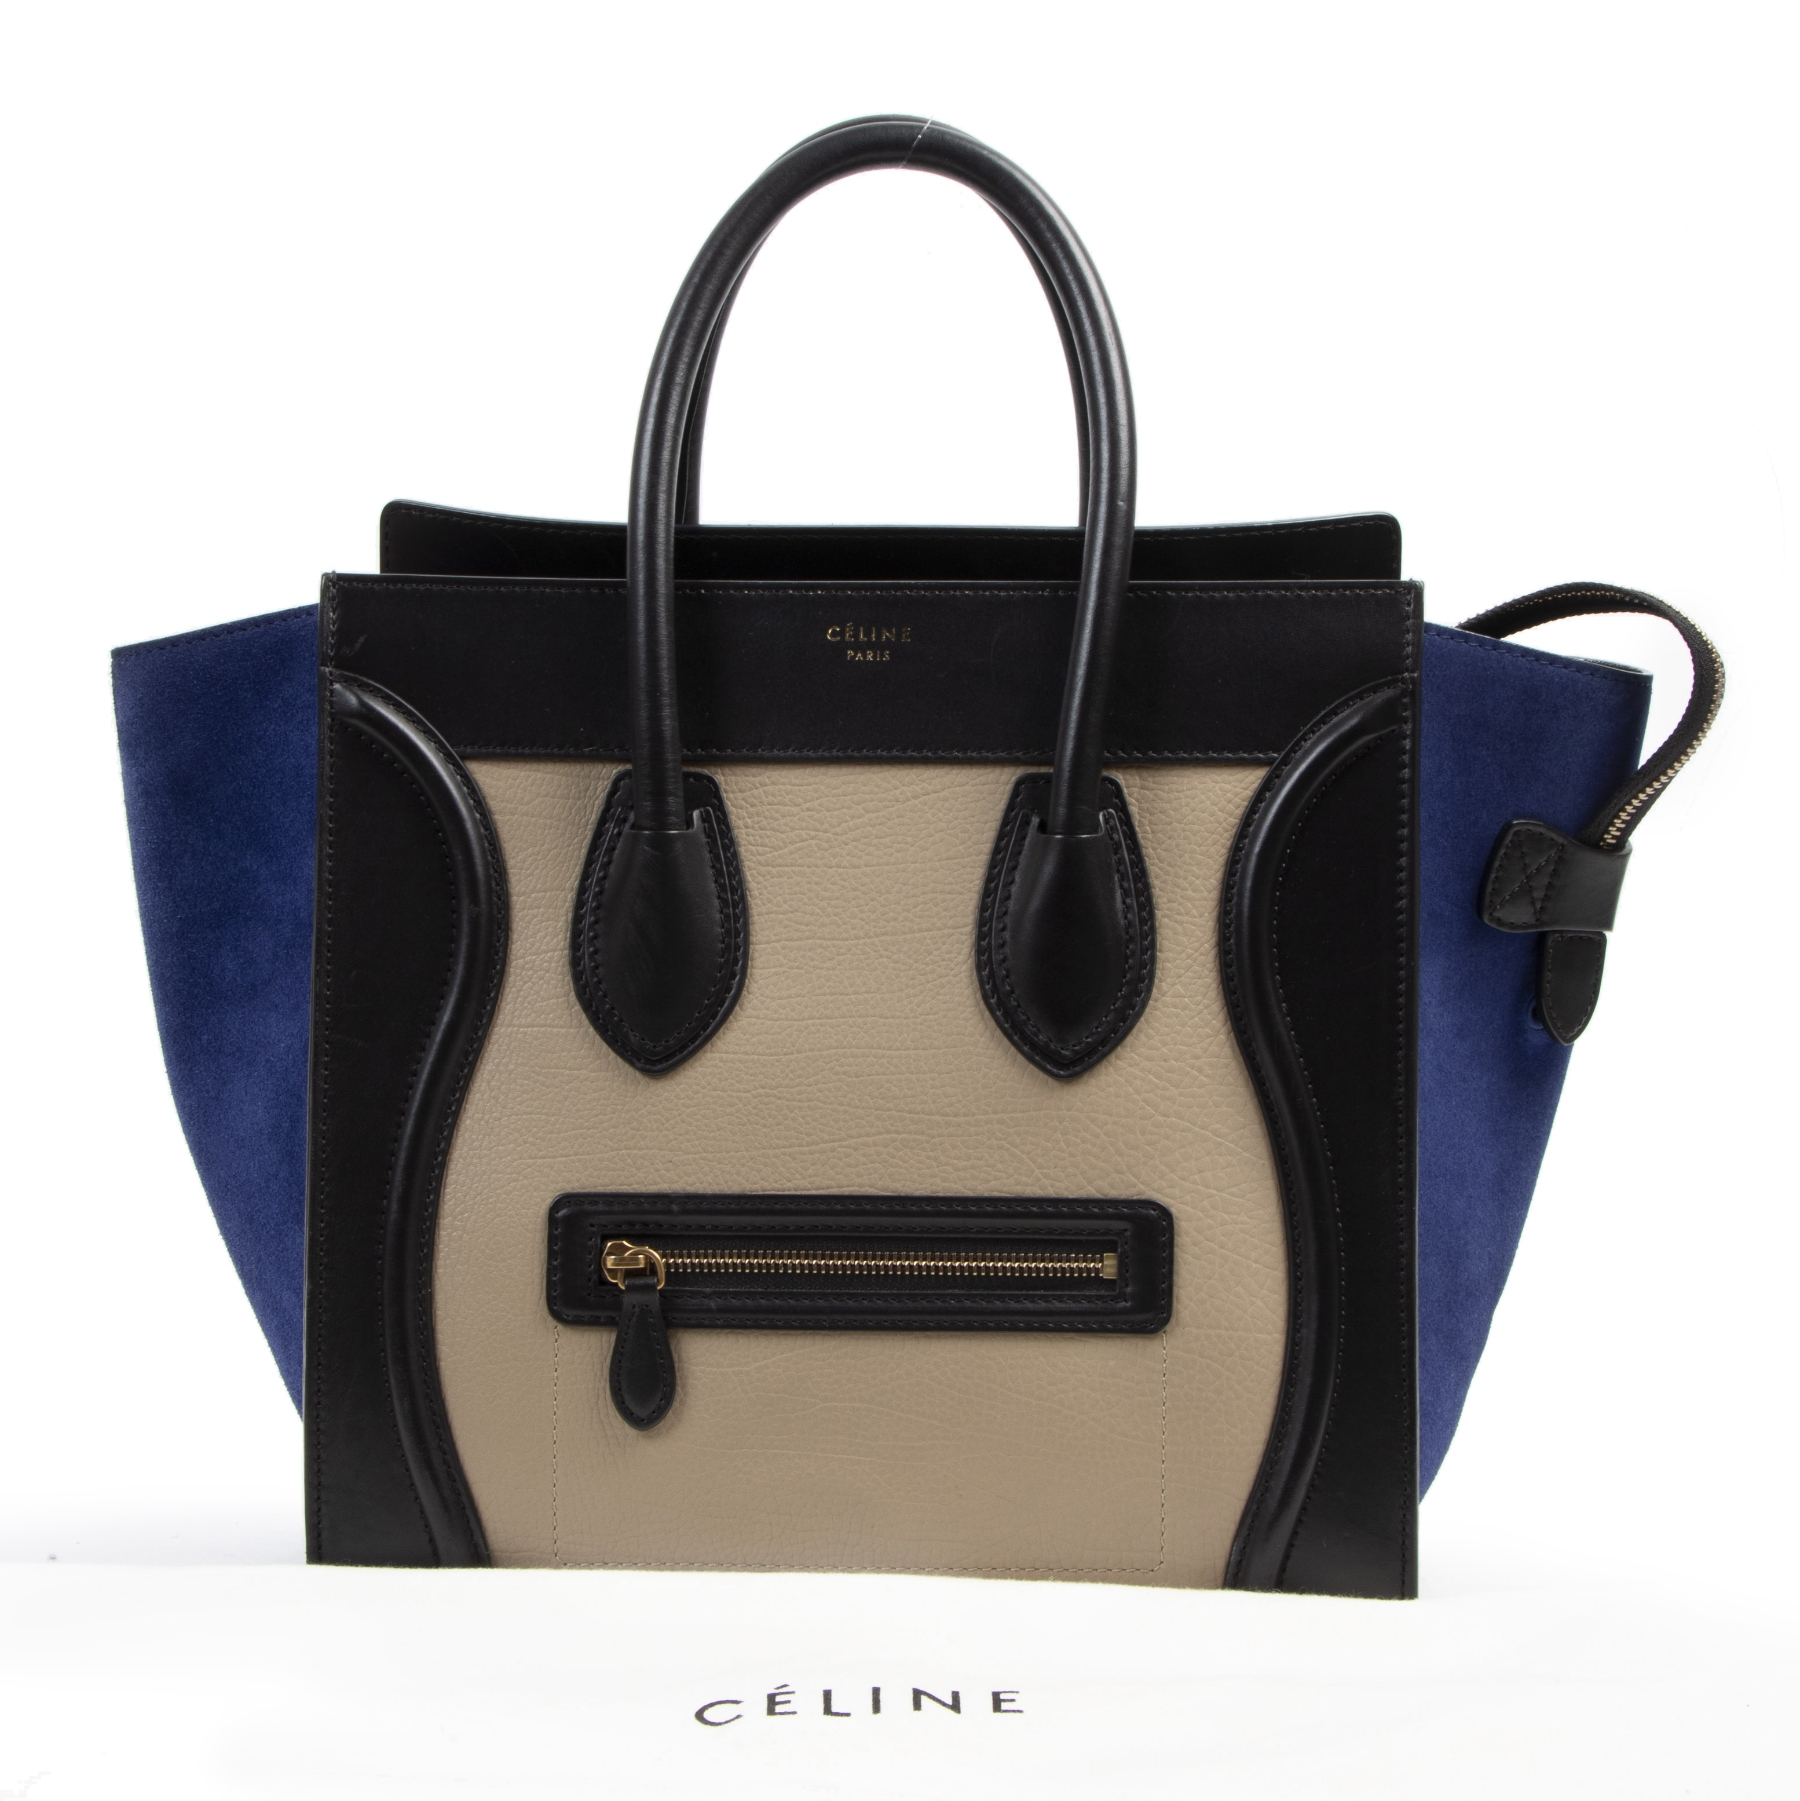 Authentieke tweedehands vintage Céline Tricolor Luggage Handbag koop online webshop LabelLOV